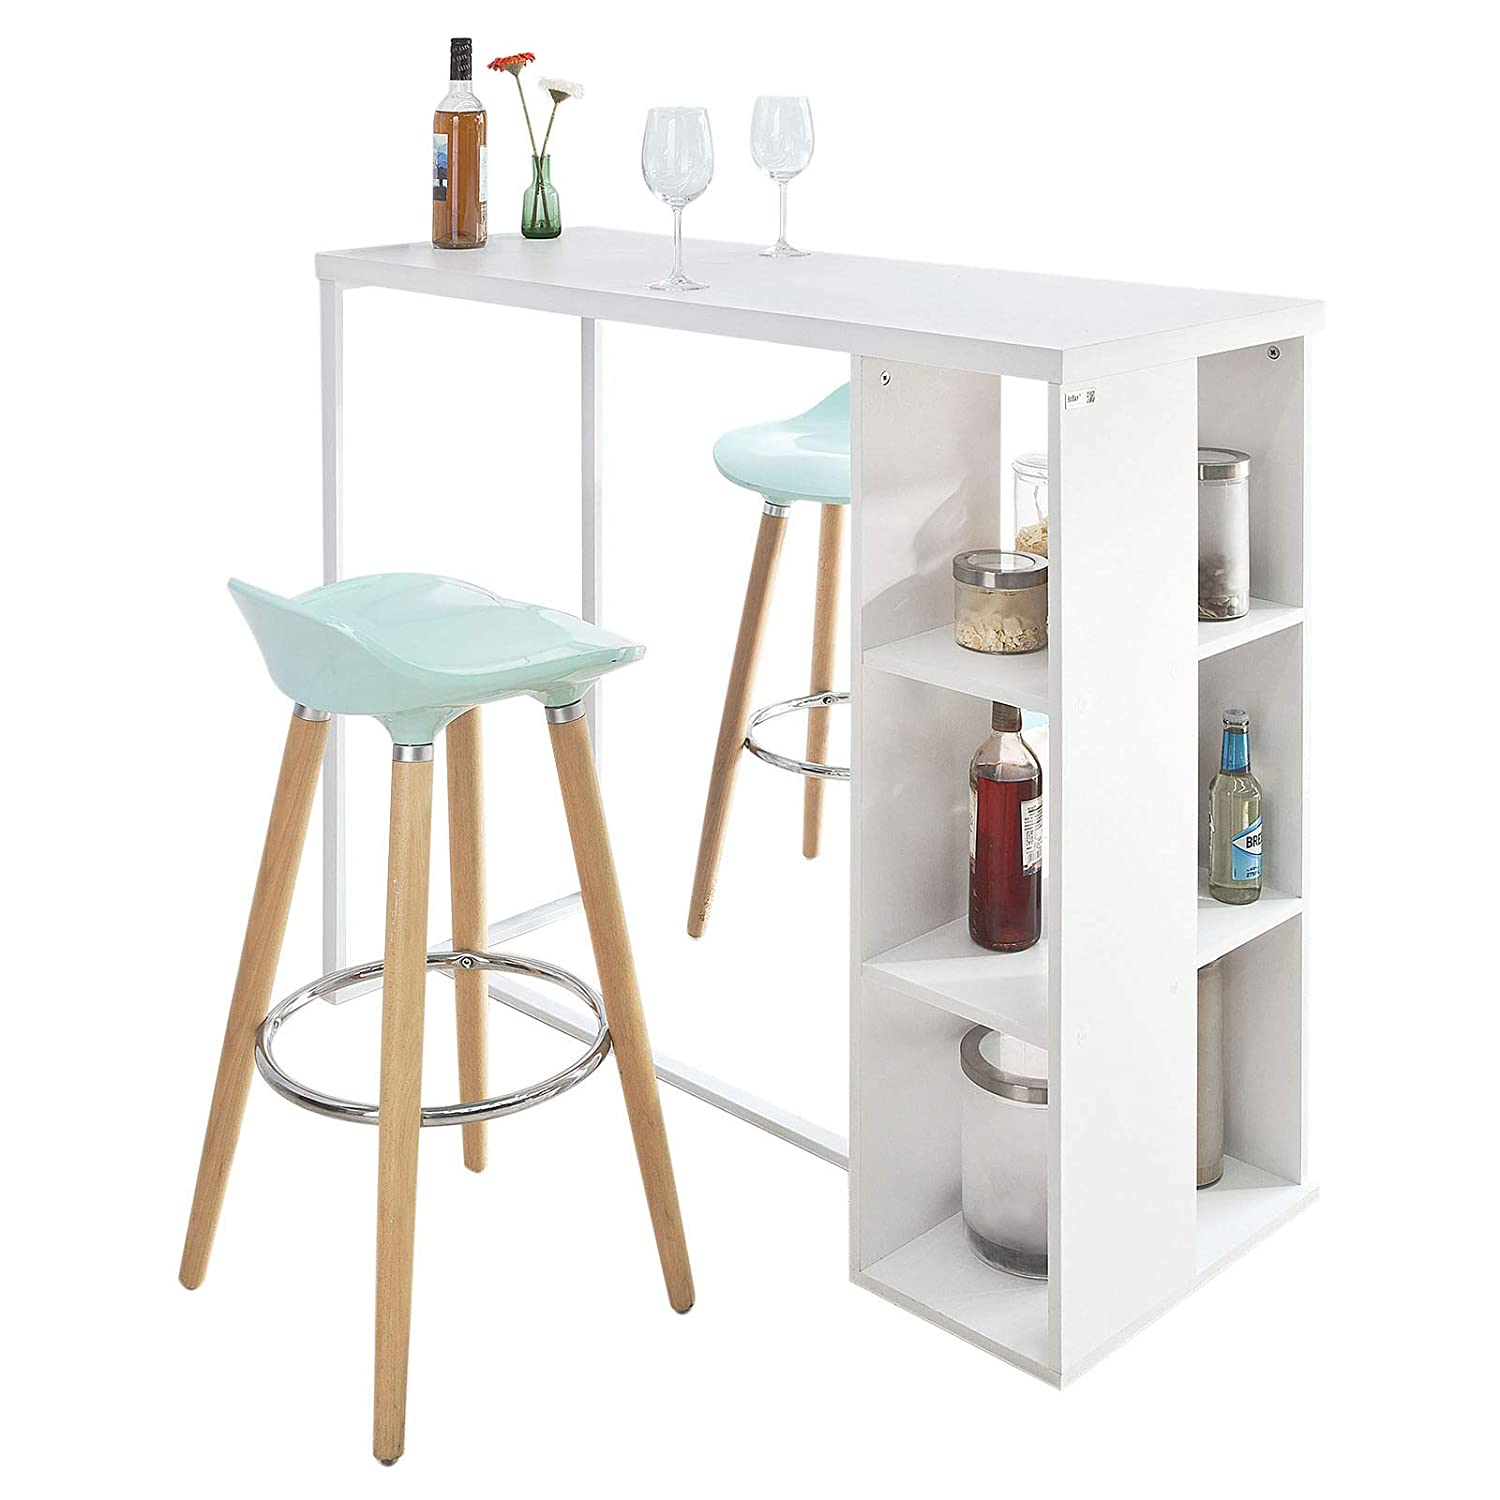 SoBuy® FWT39-W, Kitchen Breakfast Bar Table Dining Table Coffee Table with 3-Tier Storage Rack